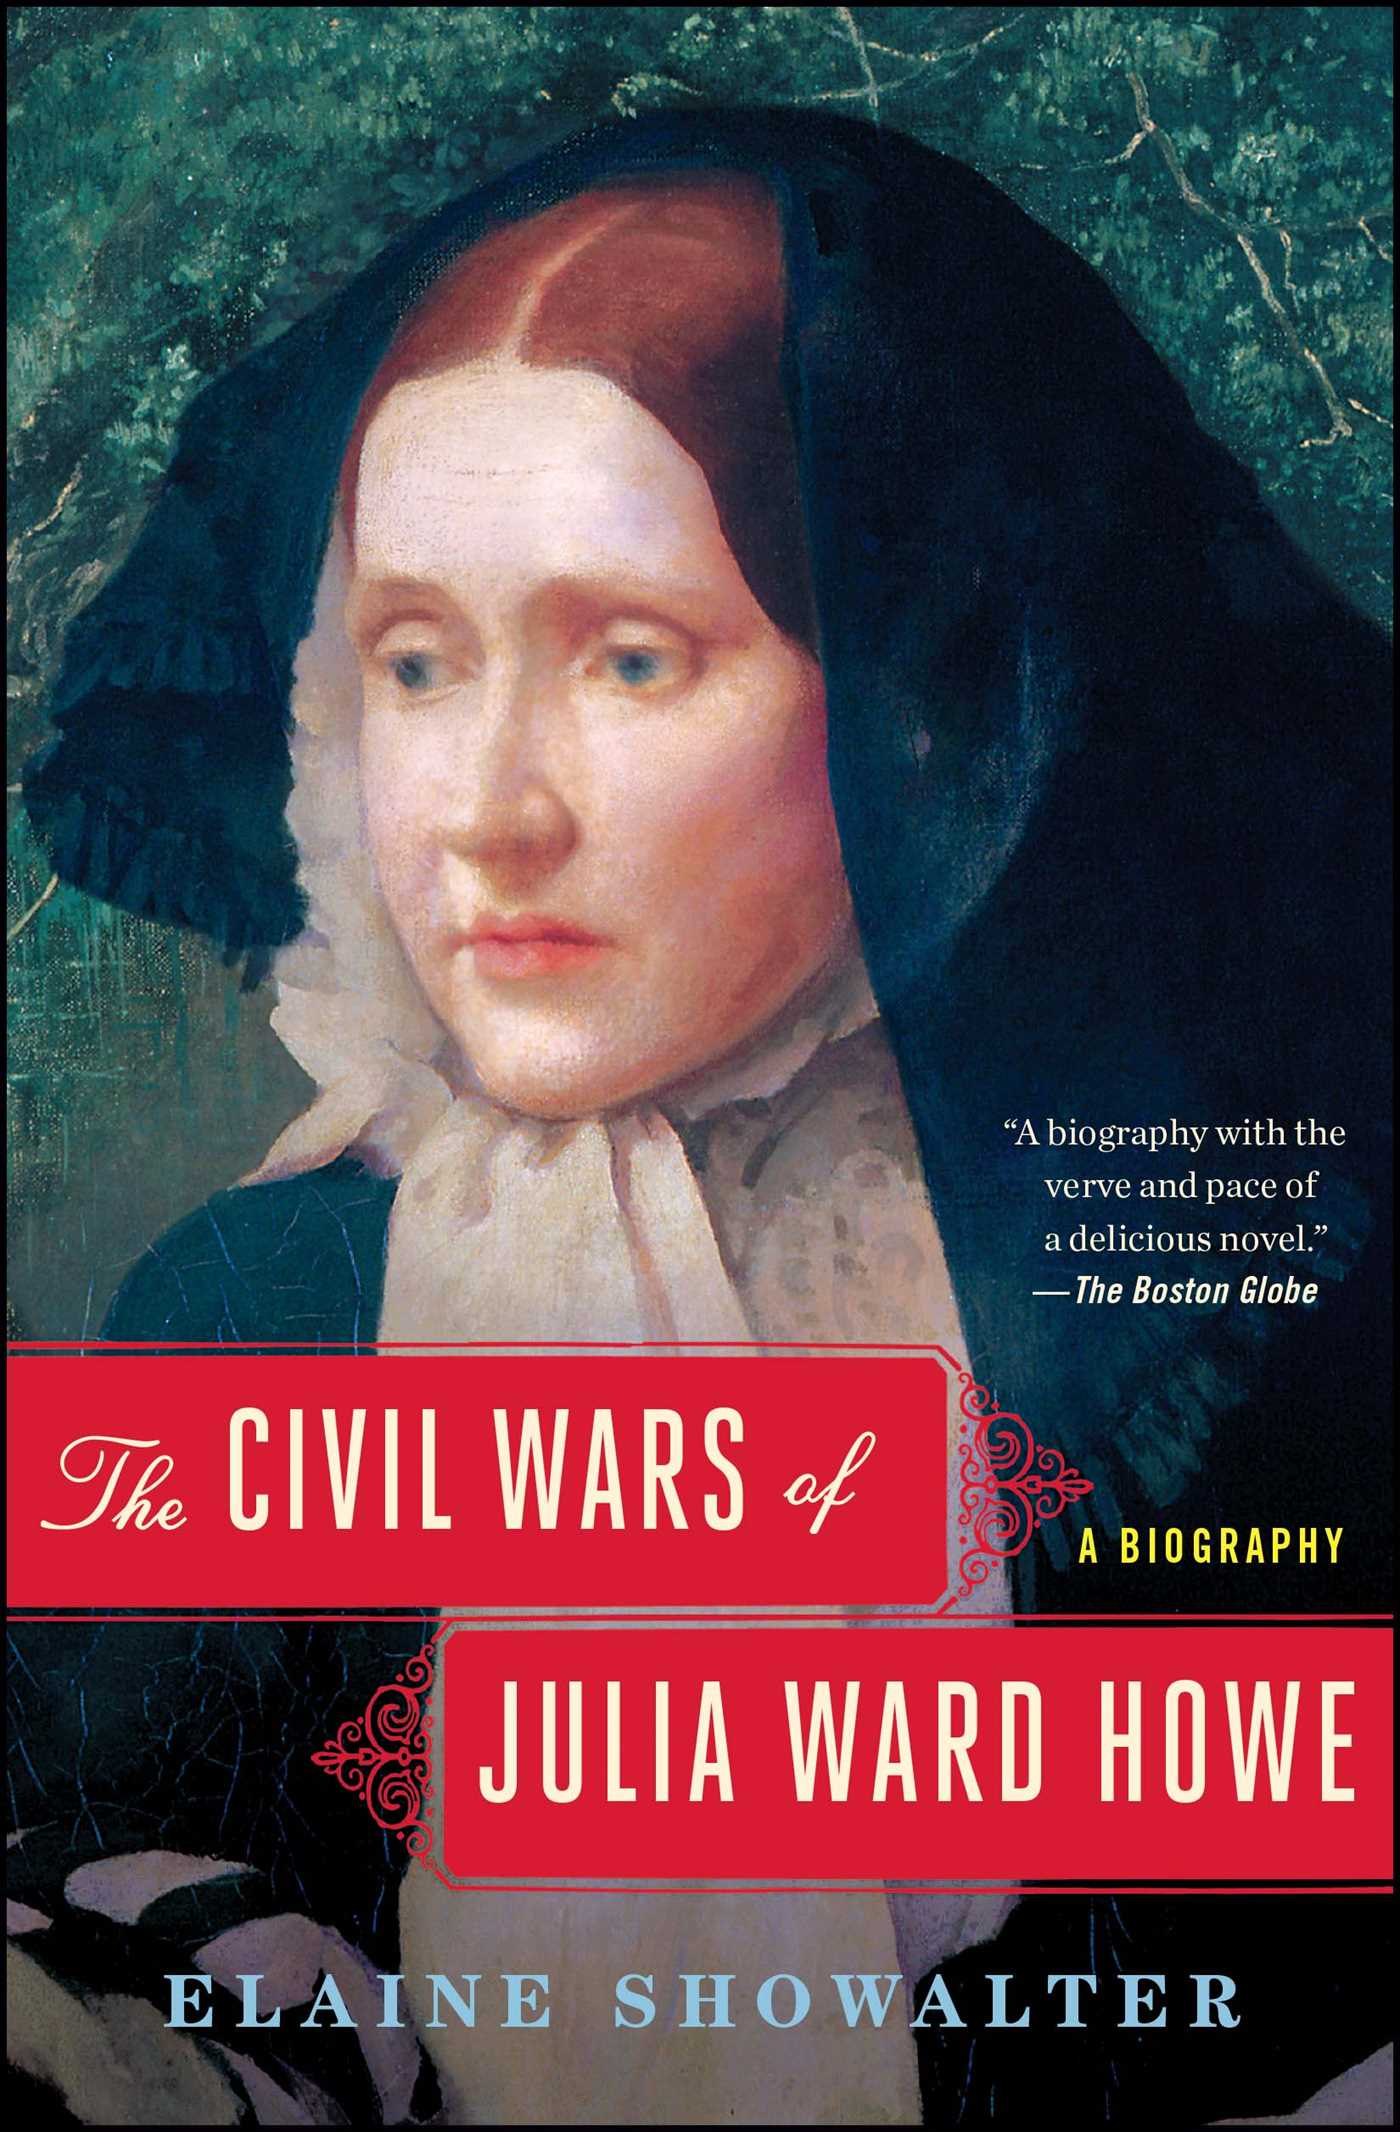 The Civil Wars Of Julia Ward Howe  Book By Elaine Showalter  Official  Publisher Page  Simon & Schuster